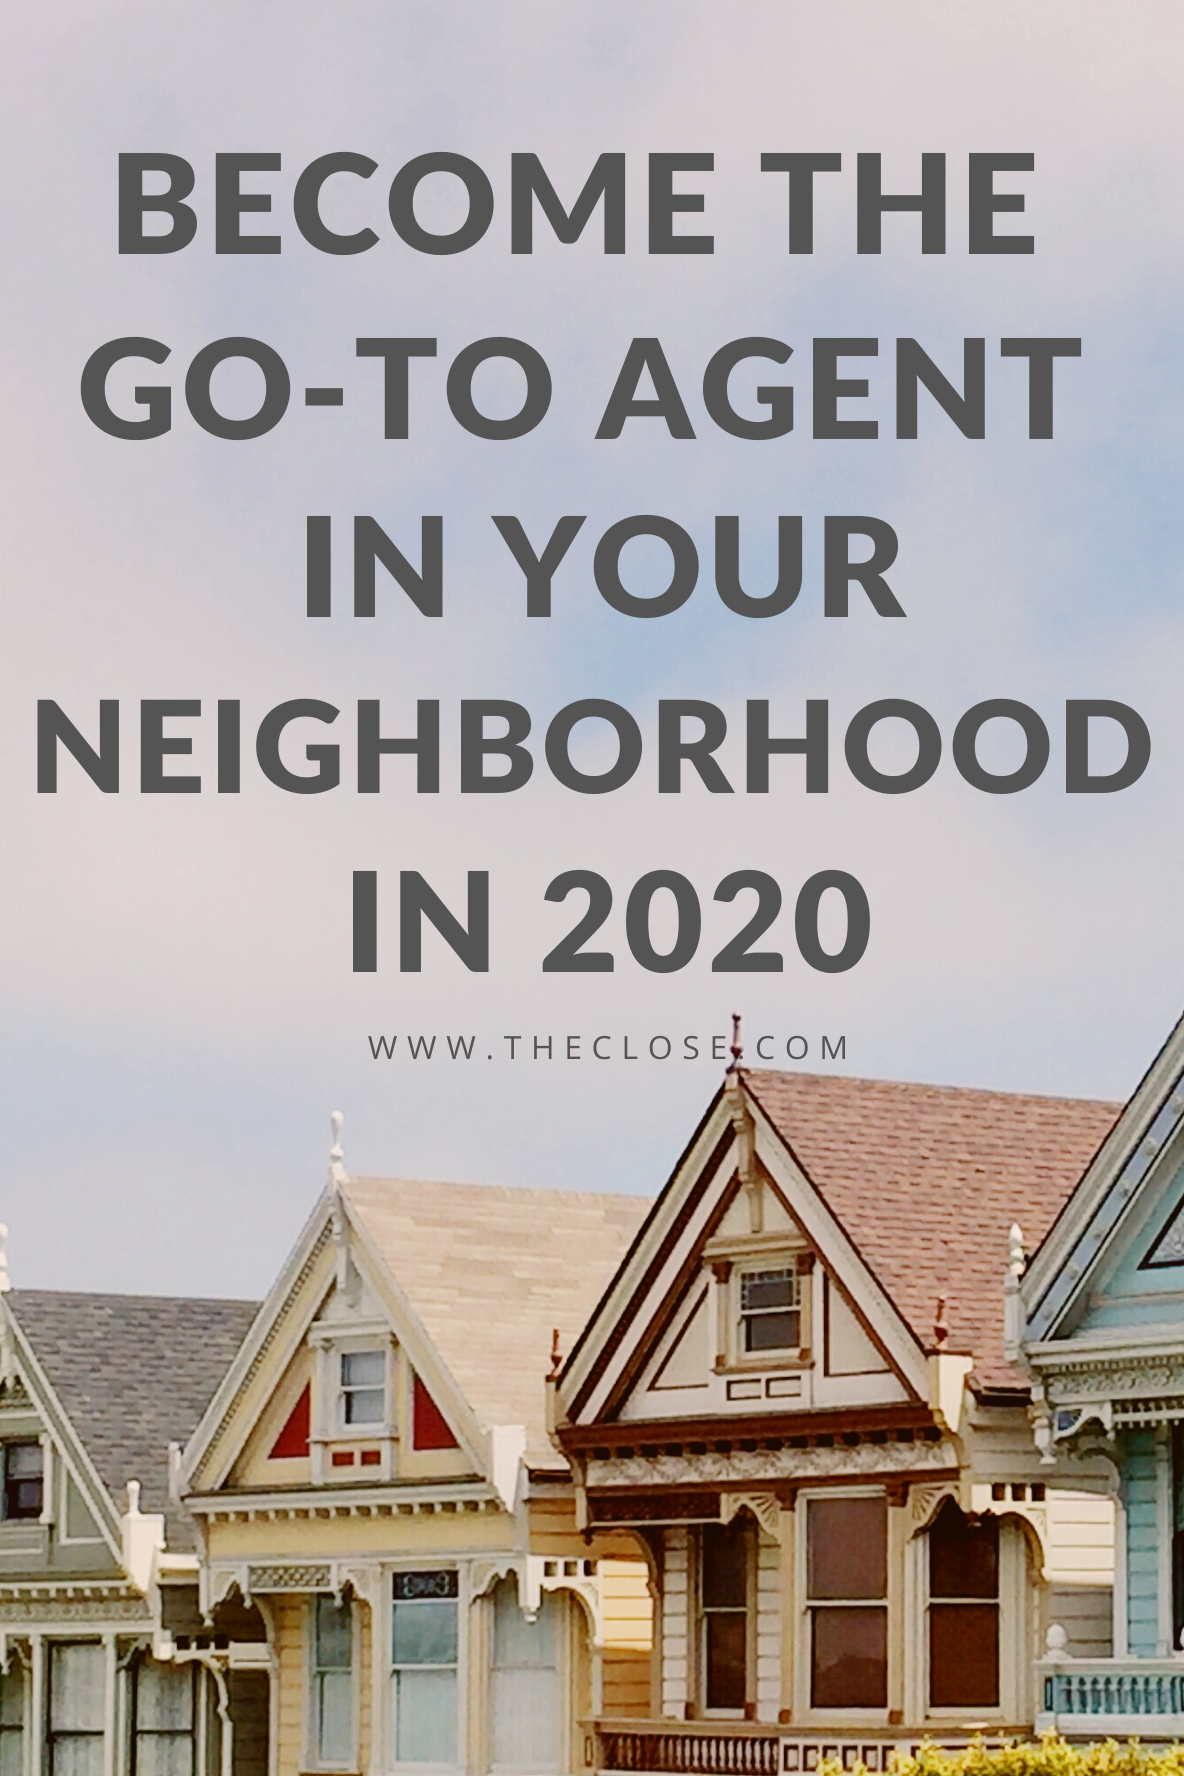 Real Estate Farming How To Become The Go To Agent In Your Neighborhood In 2021 The Close Real Estate Agent Marketing Real Estate Pictures Selling Real Estate